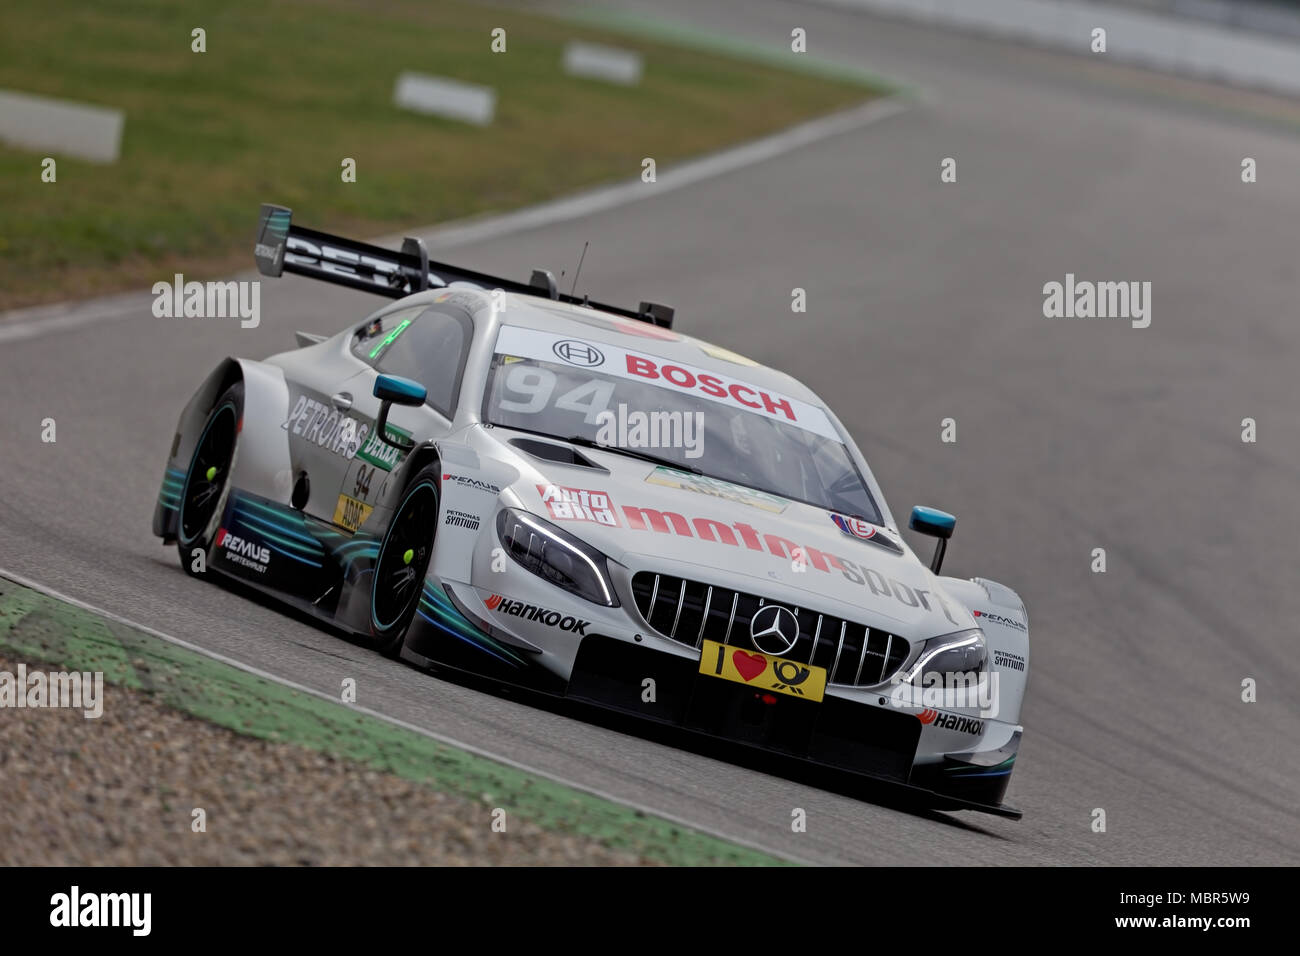 pascal wehrlein ger mercedes dtm 2018 tests. Black Bedroom Furniture Sets. Home Design Ideas